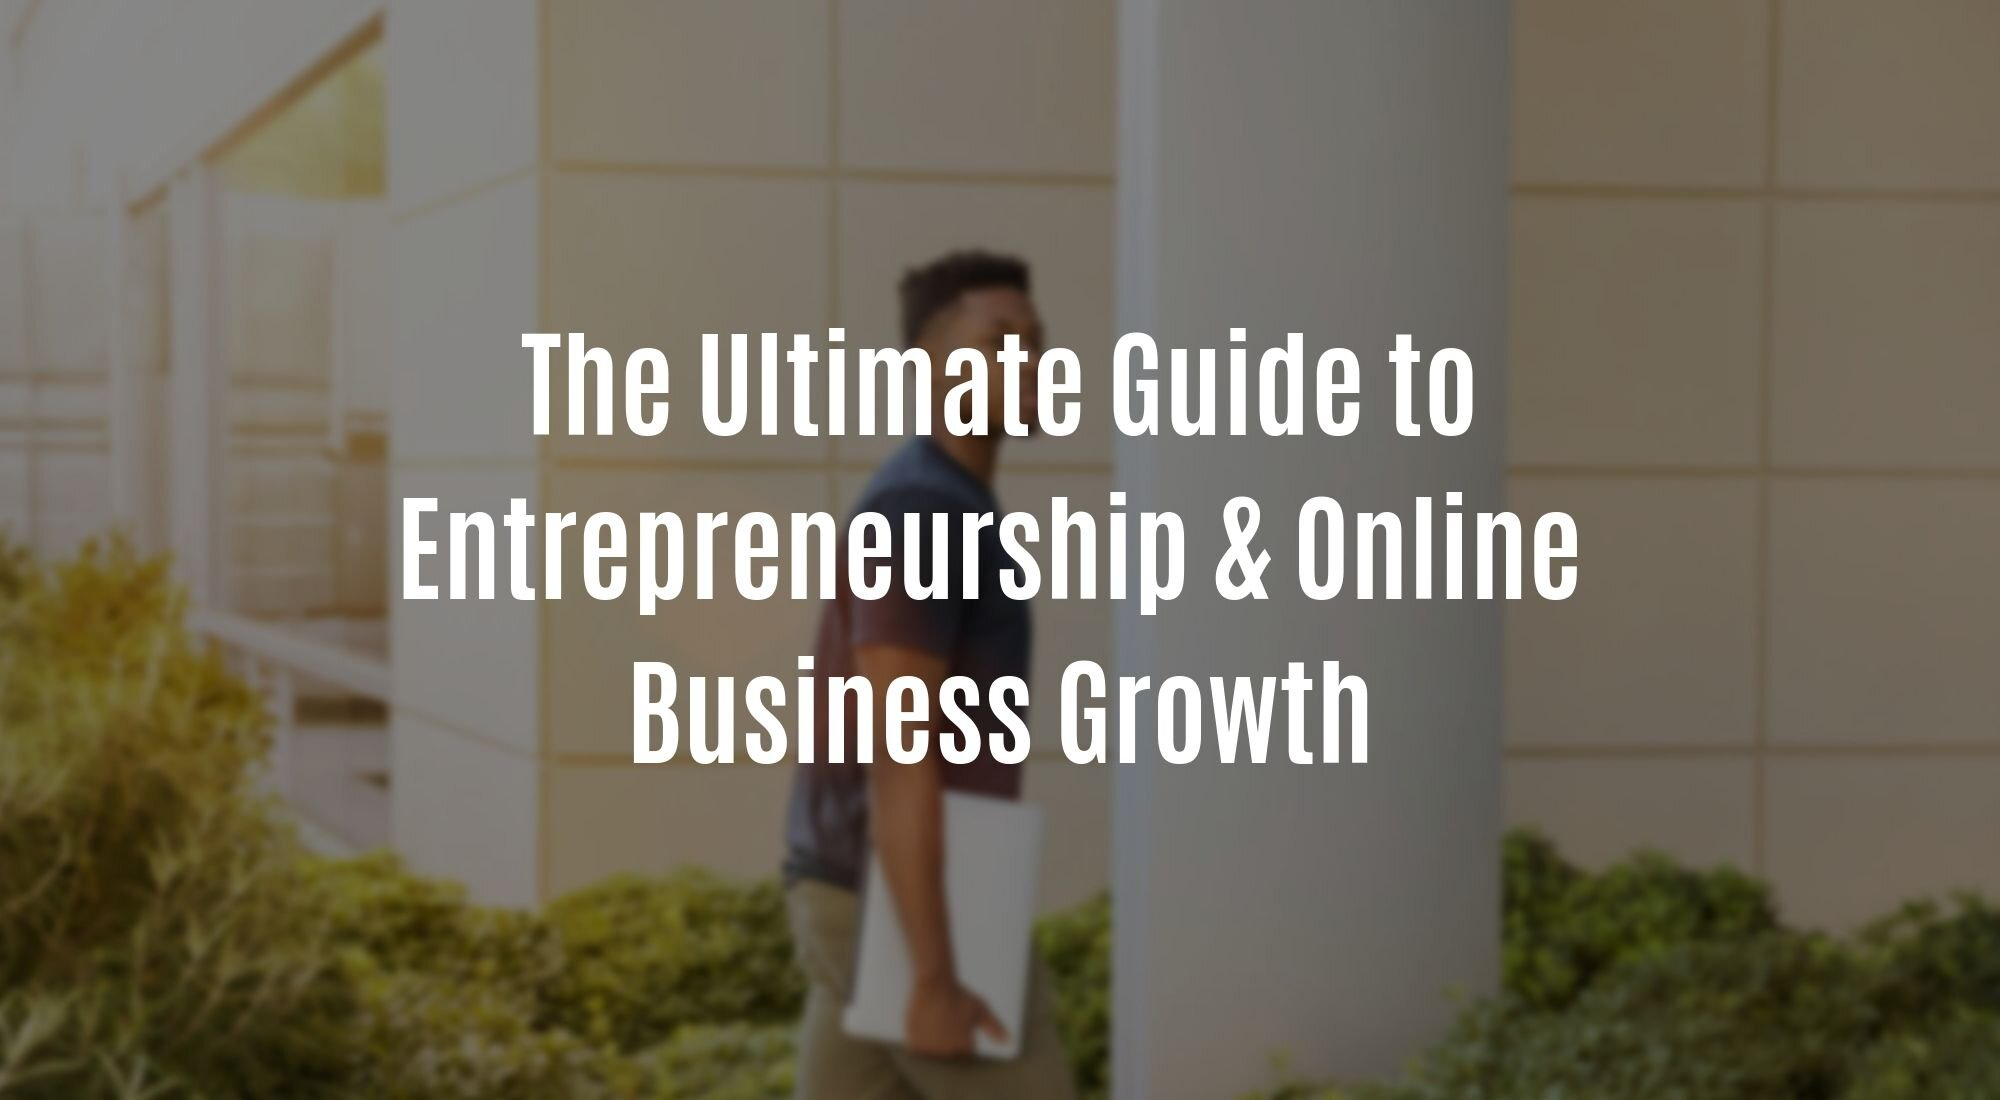 The Ultimate Guide to Entrepreneurship & Online Business Growth.jpg